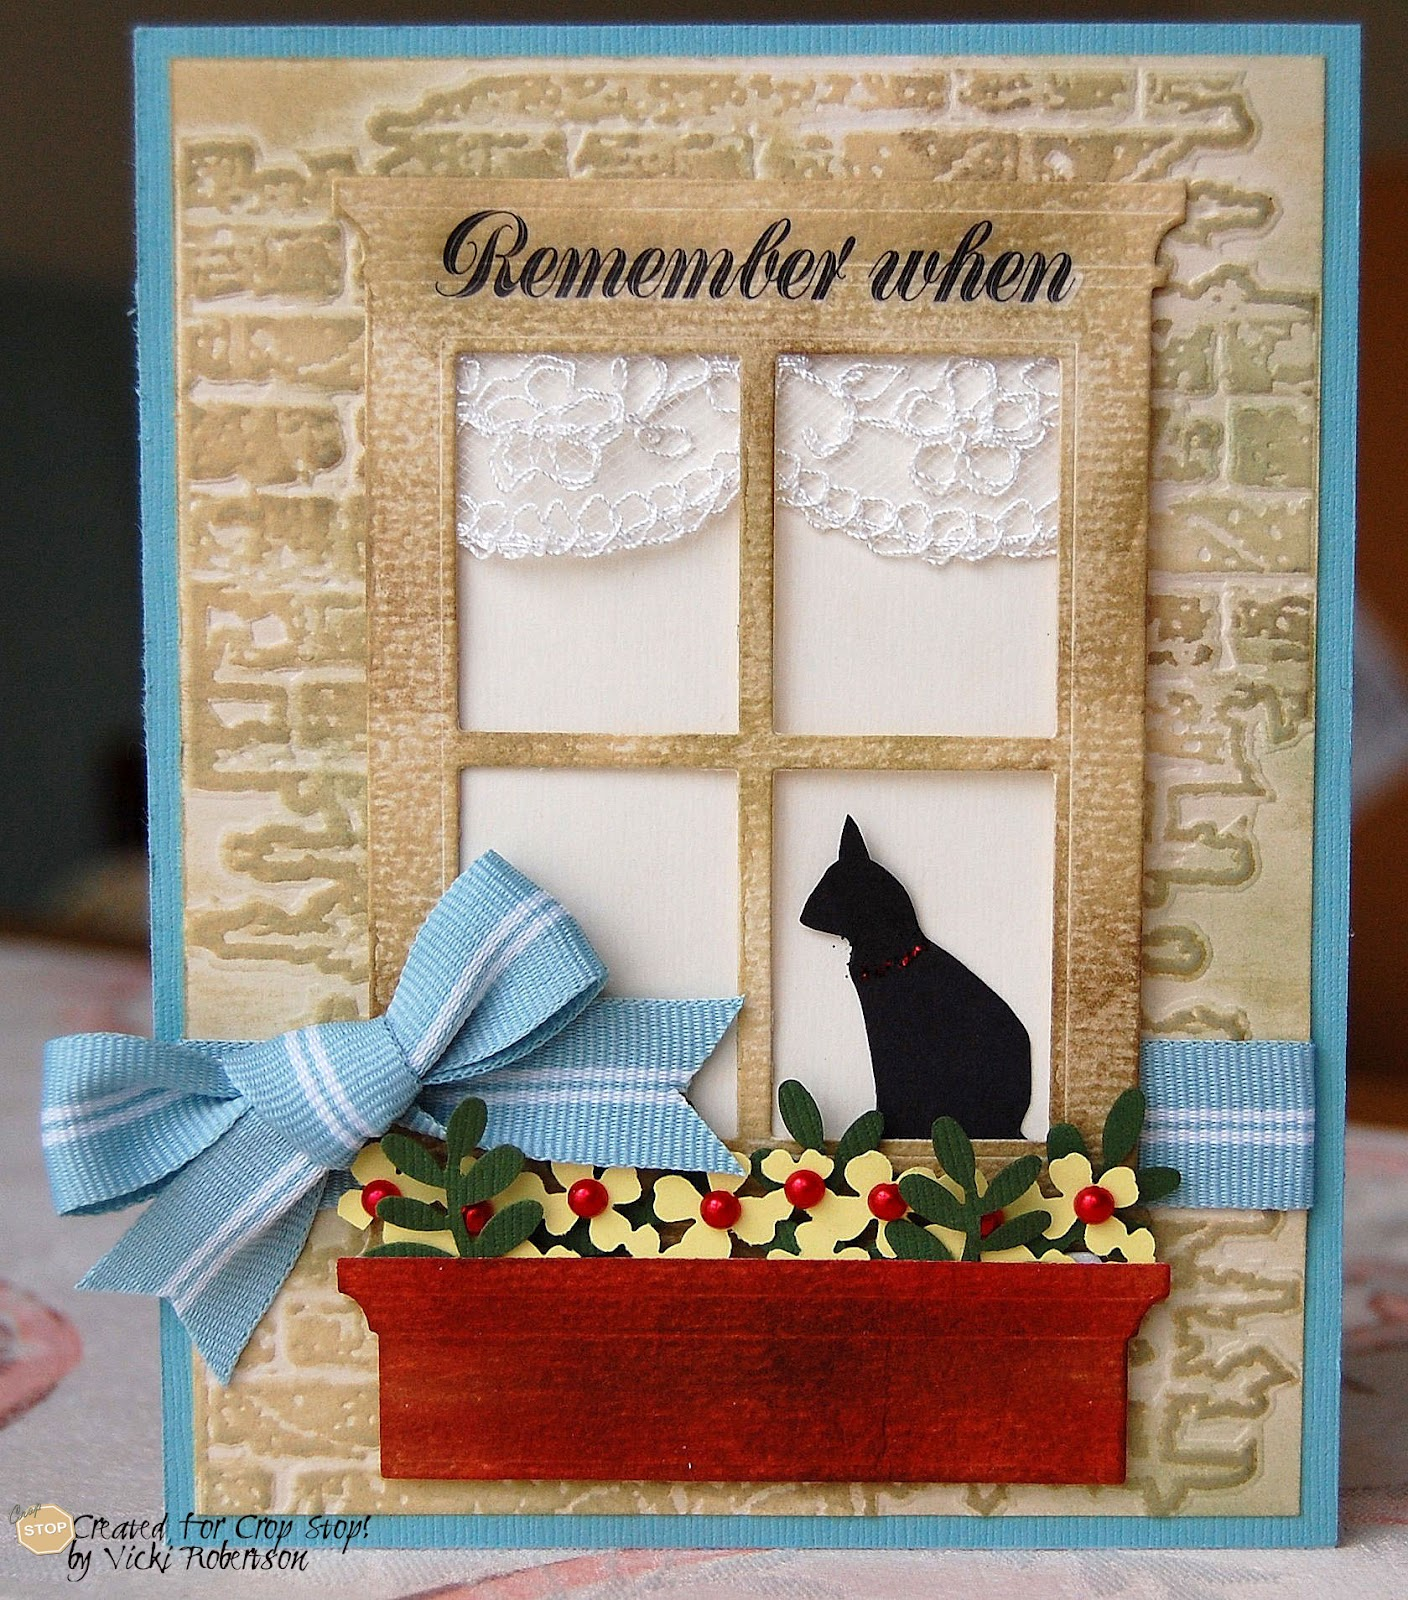 How to scrapbook like poppy - 95 Best Images About Window Cards On Pinterest Stamping Embossing Folder And Memories Box